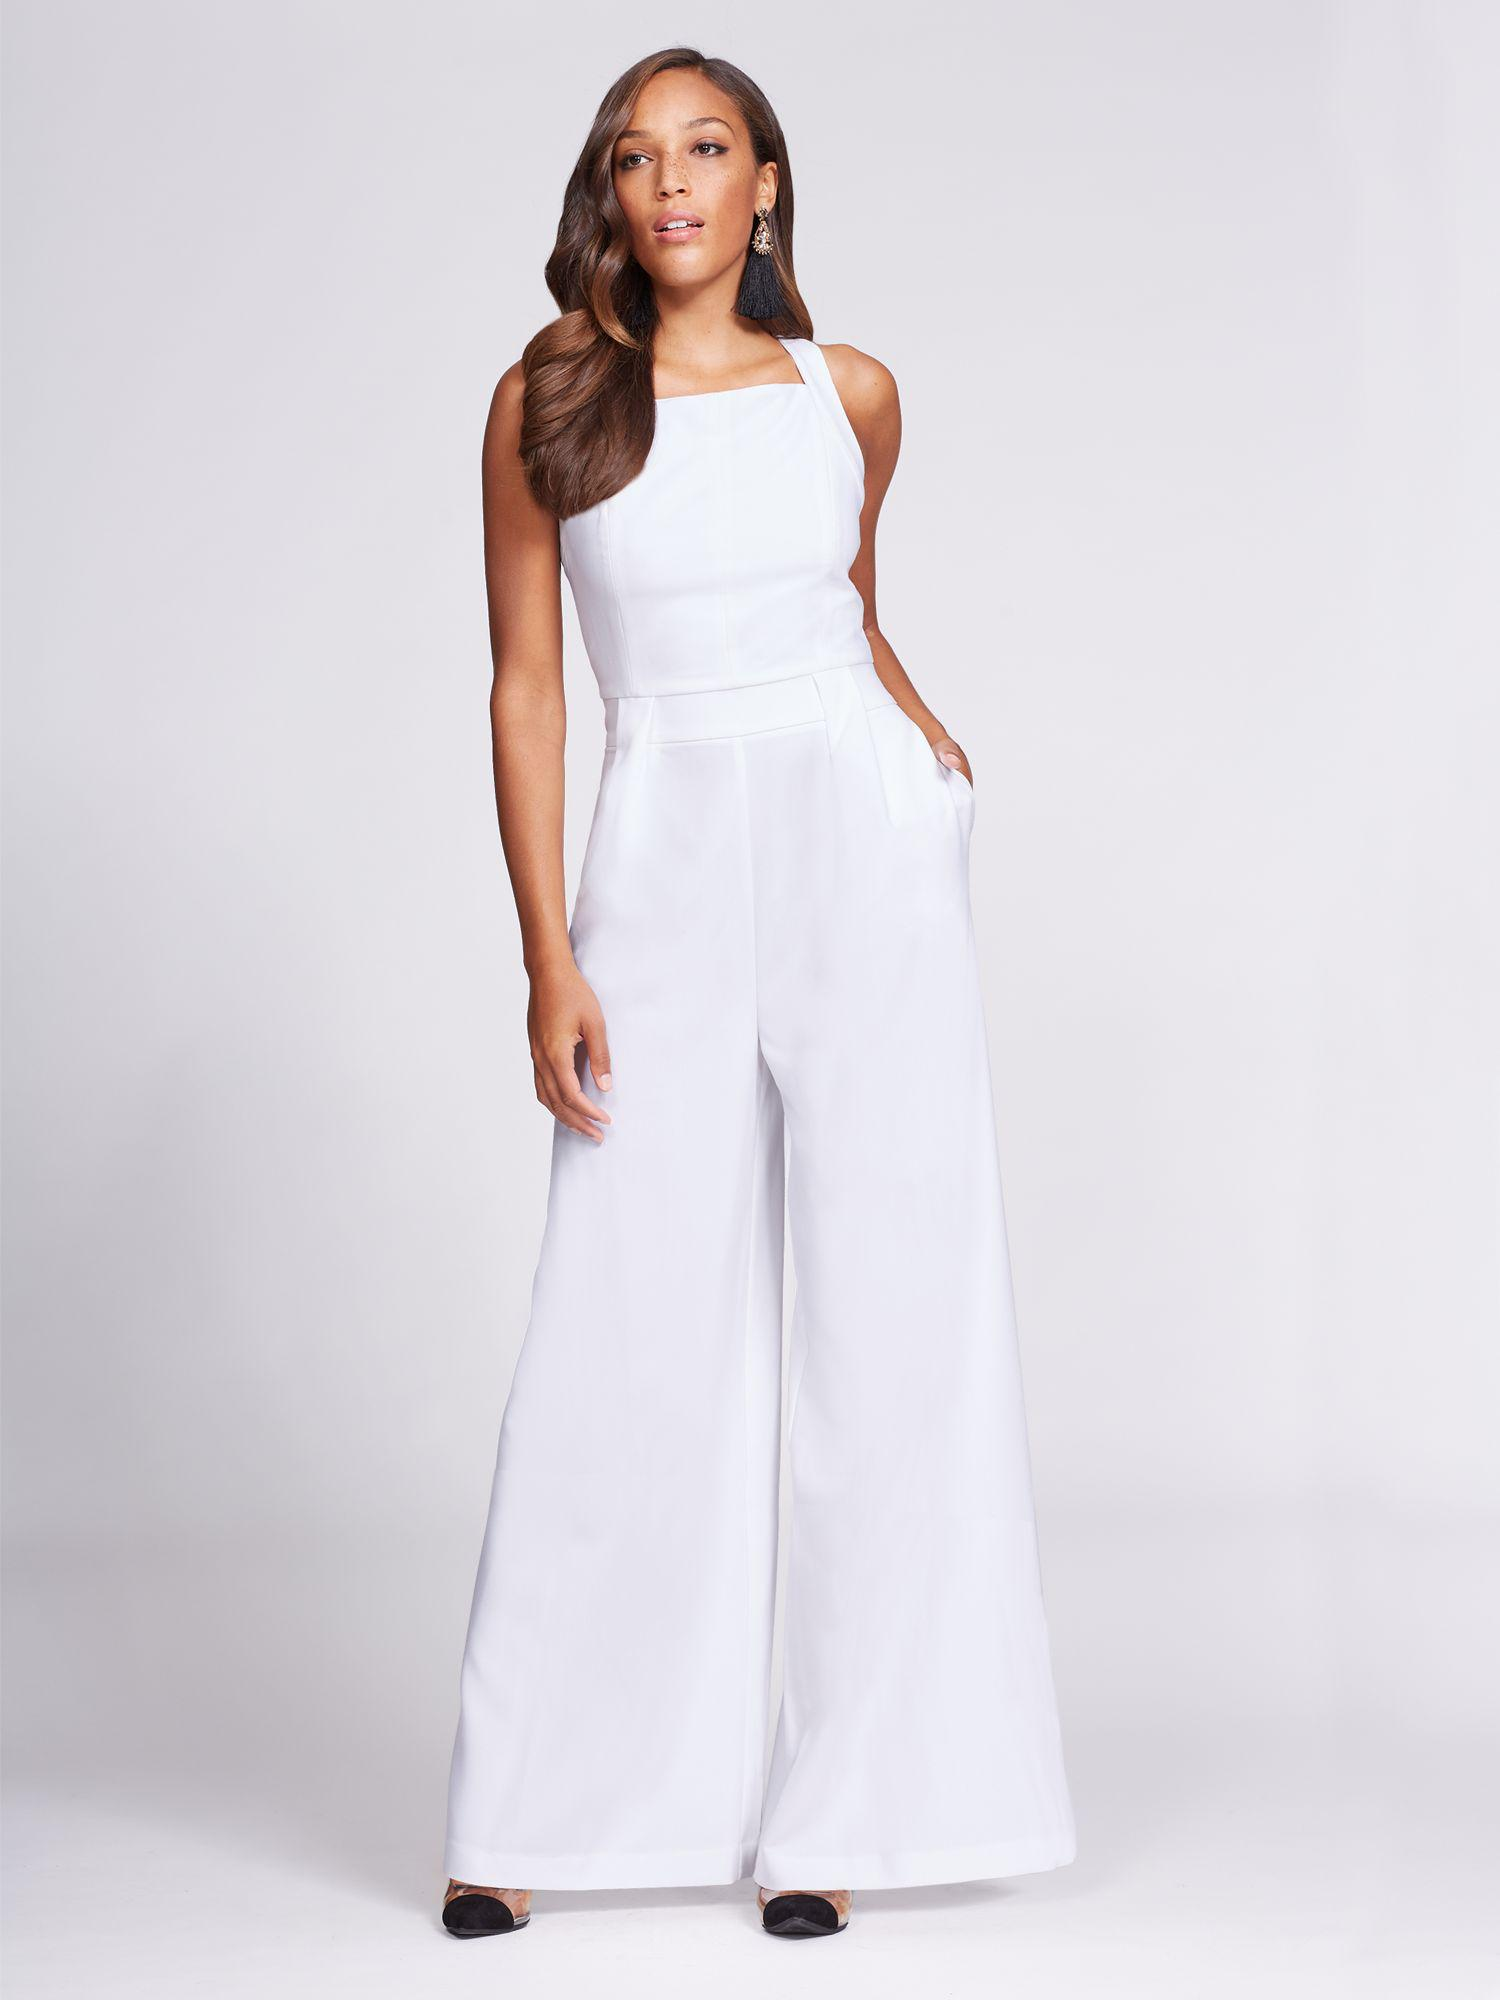 Lyst New York Company Gabrielle Union Collection Jumpsuit In White